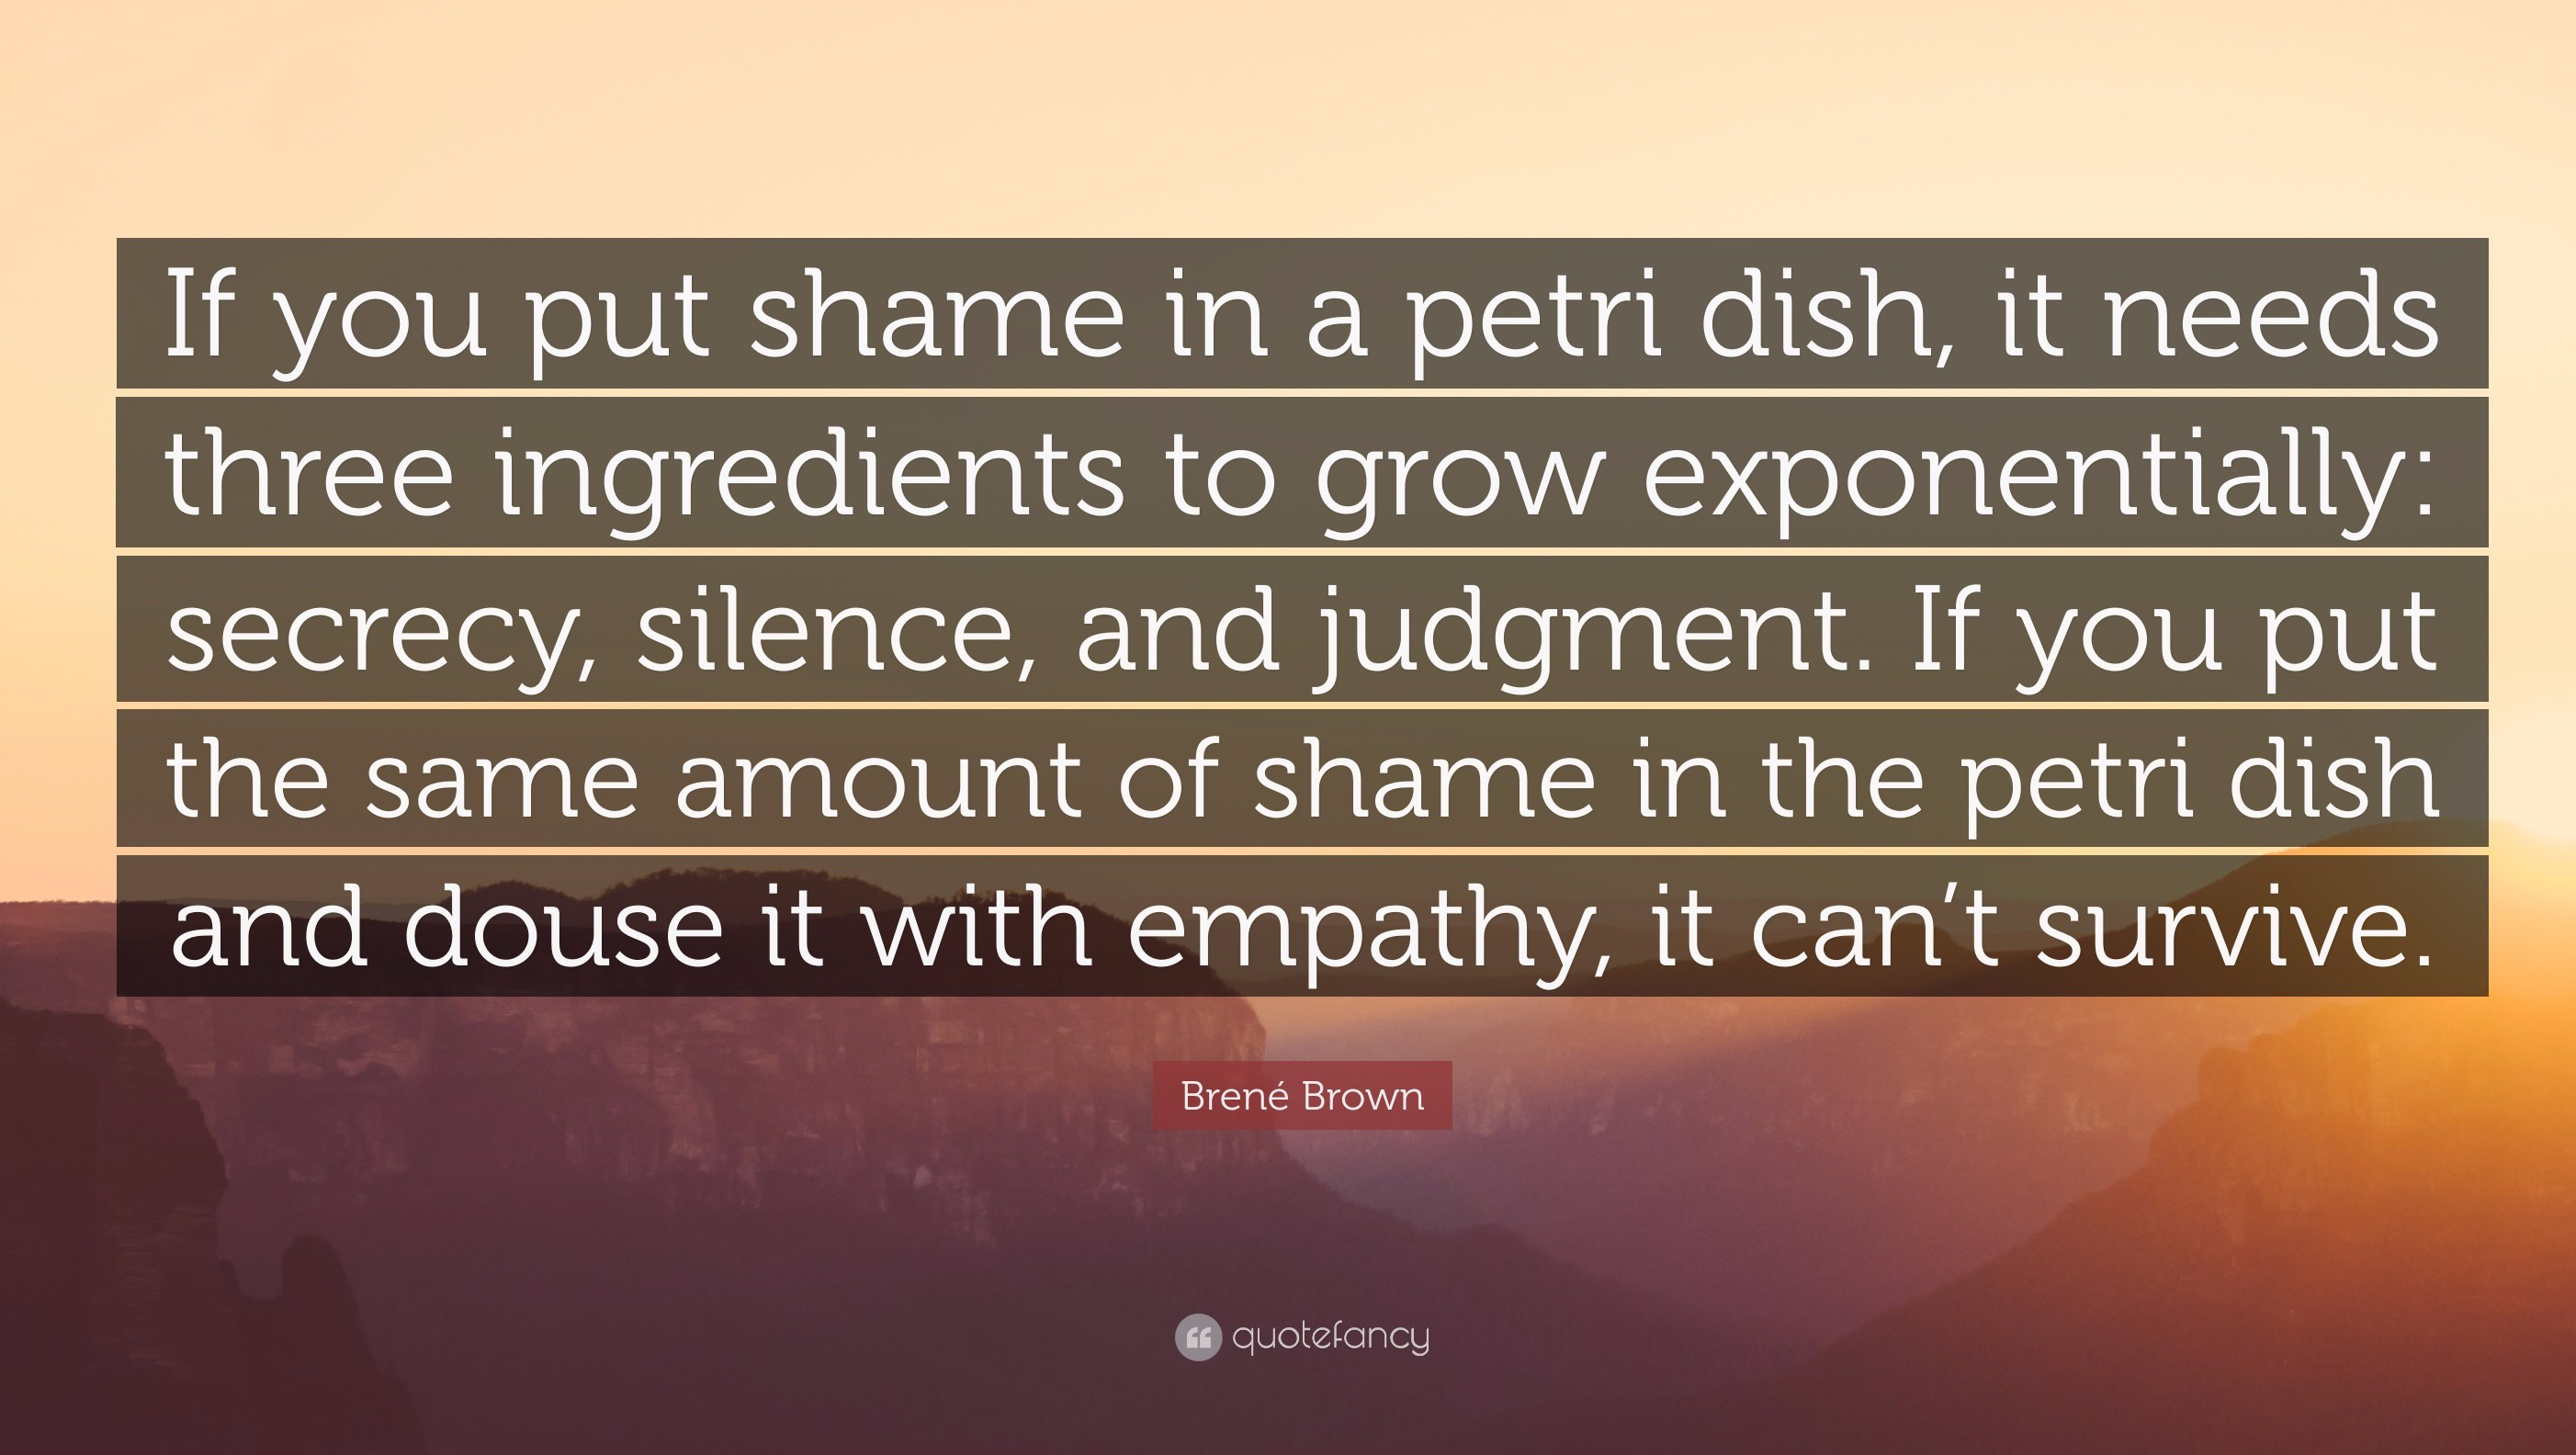 155590-Bren-Brown-Quote-If-you-put-shame-in-a-petri-dish-it-needs-three.jpg